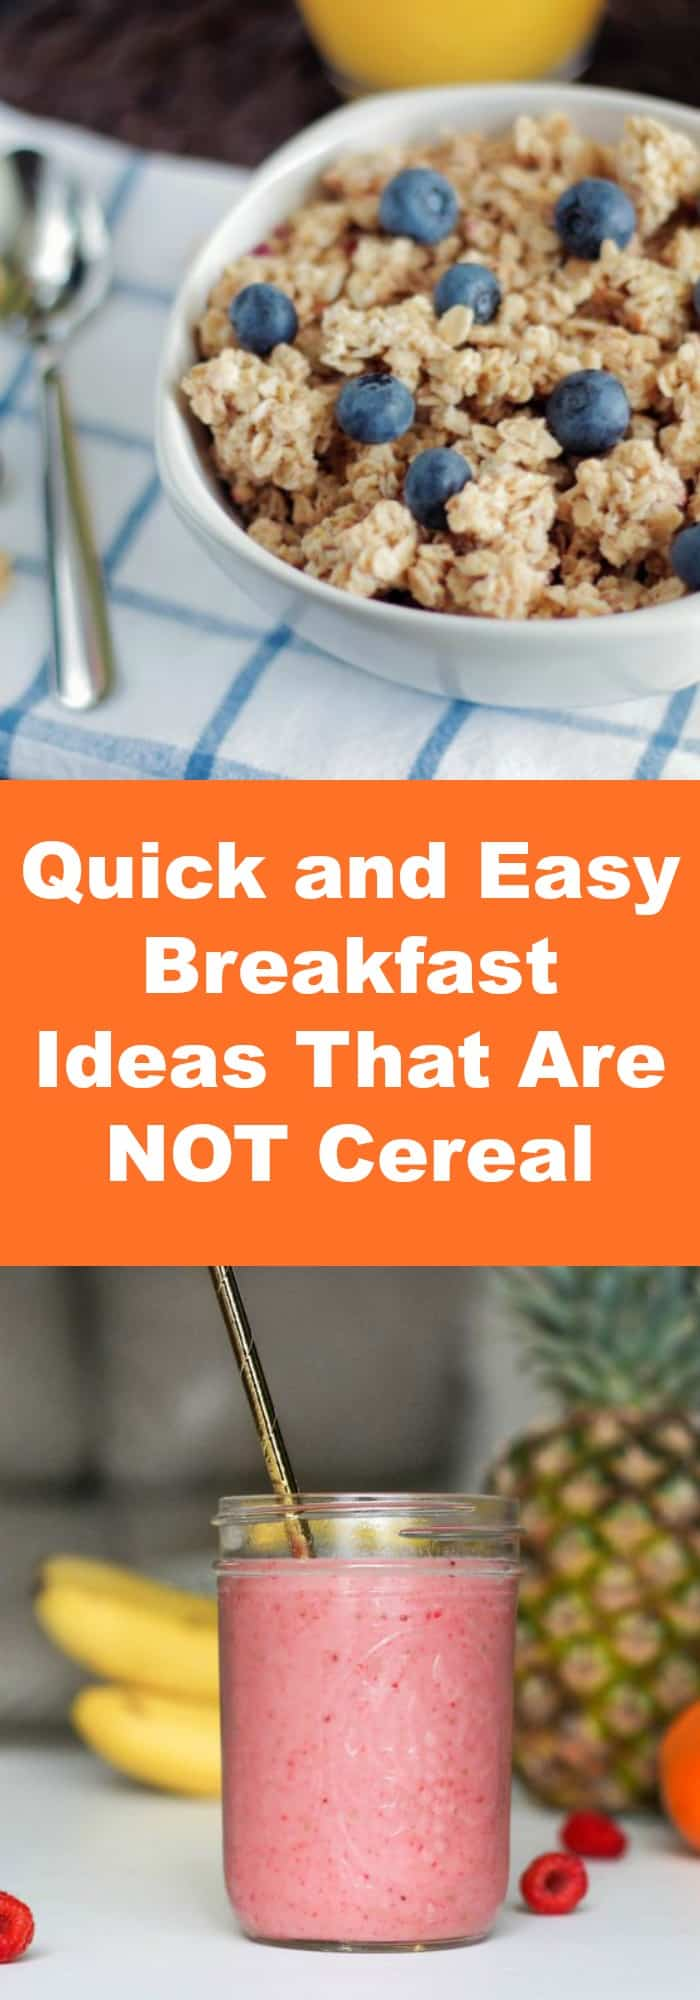 Breakfast--Quick and Easy Breakfast Ideas That Are NOT Cereal--The Organized Mom